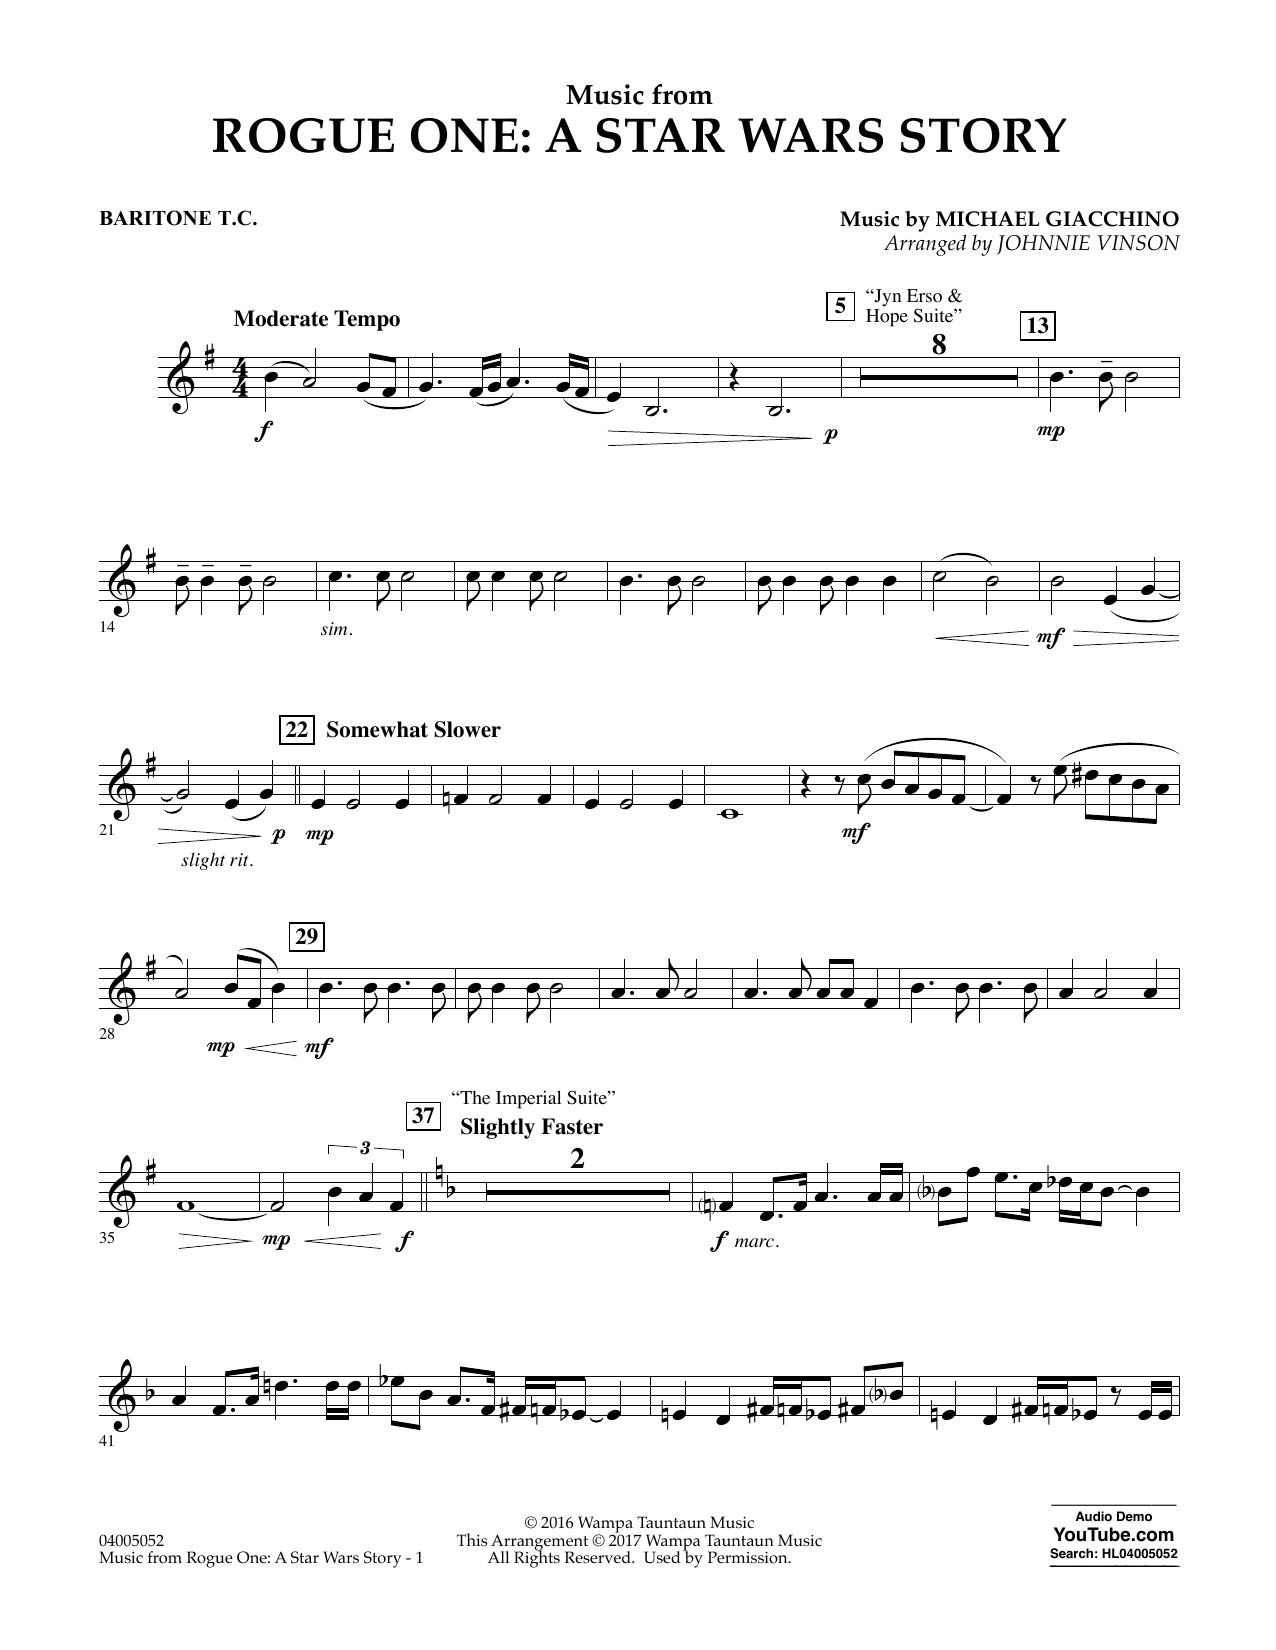 Music from Rogue One: A Star Wars Story - Baritone T.C. Sheet Music